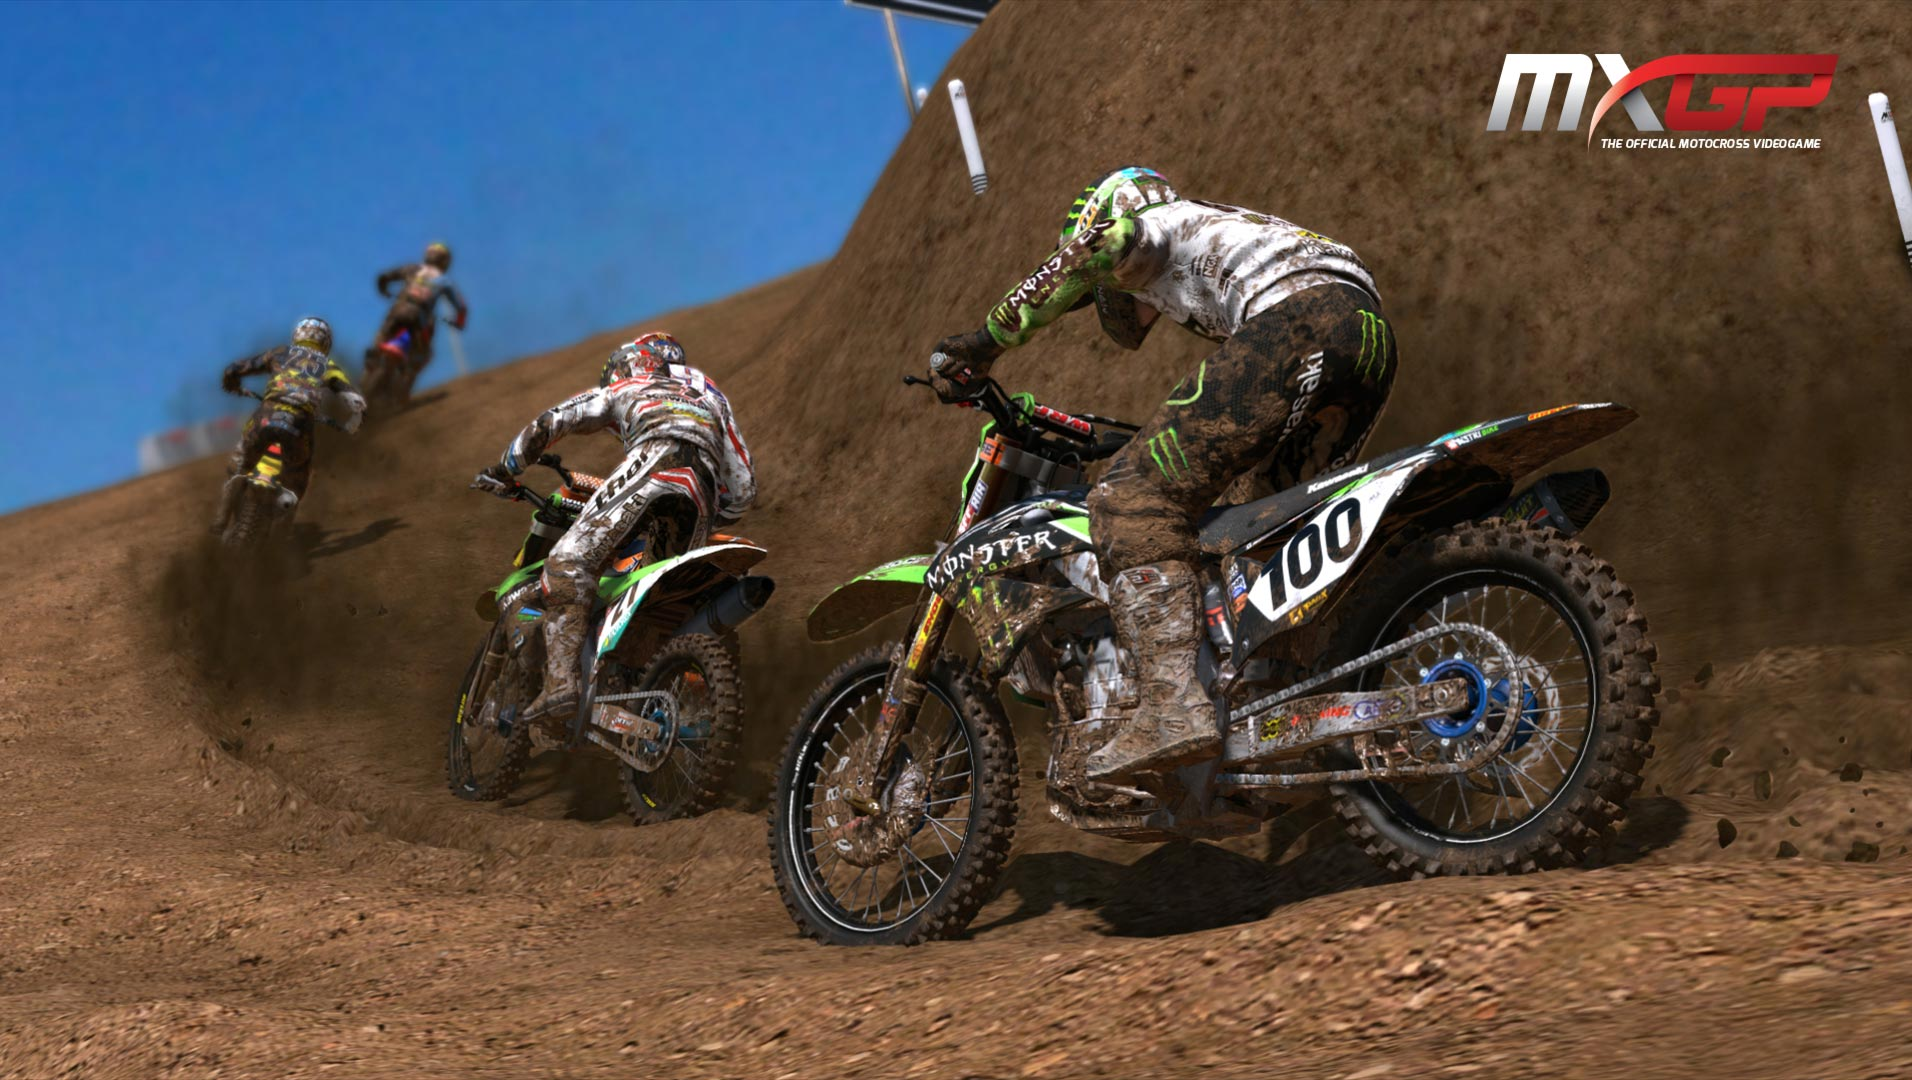 MXGP Releases New Previews Of Circuit Of Teutschenthal Inside Sim Racing